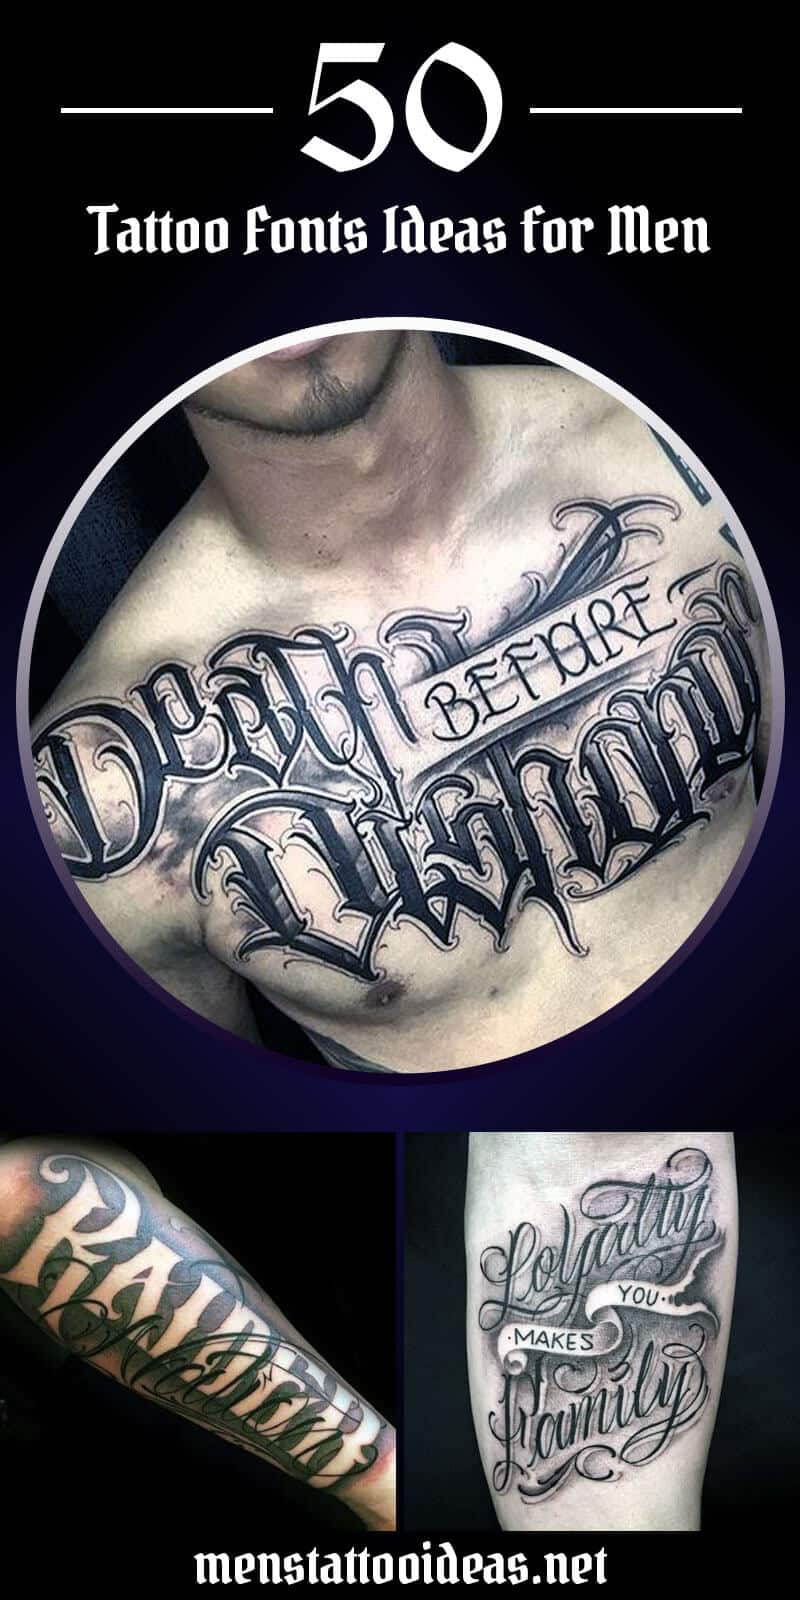 Tattoo Fonts Ideas For Men